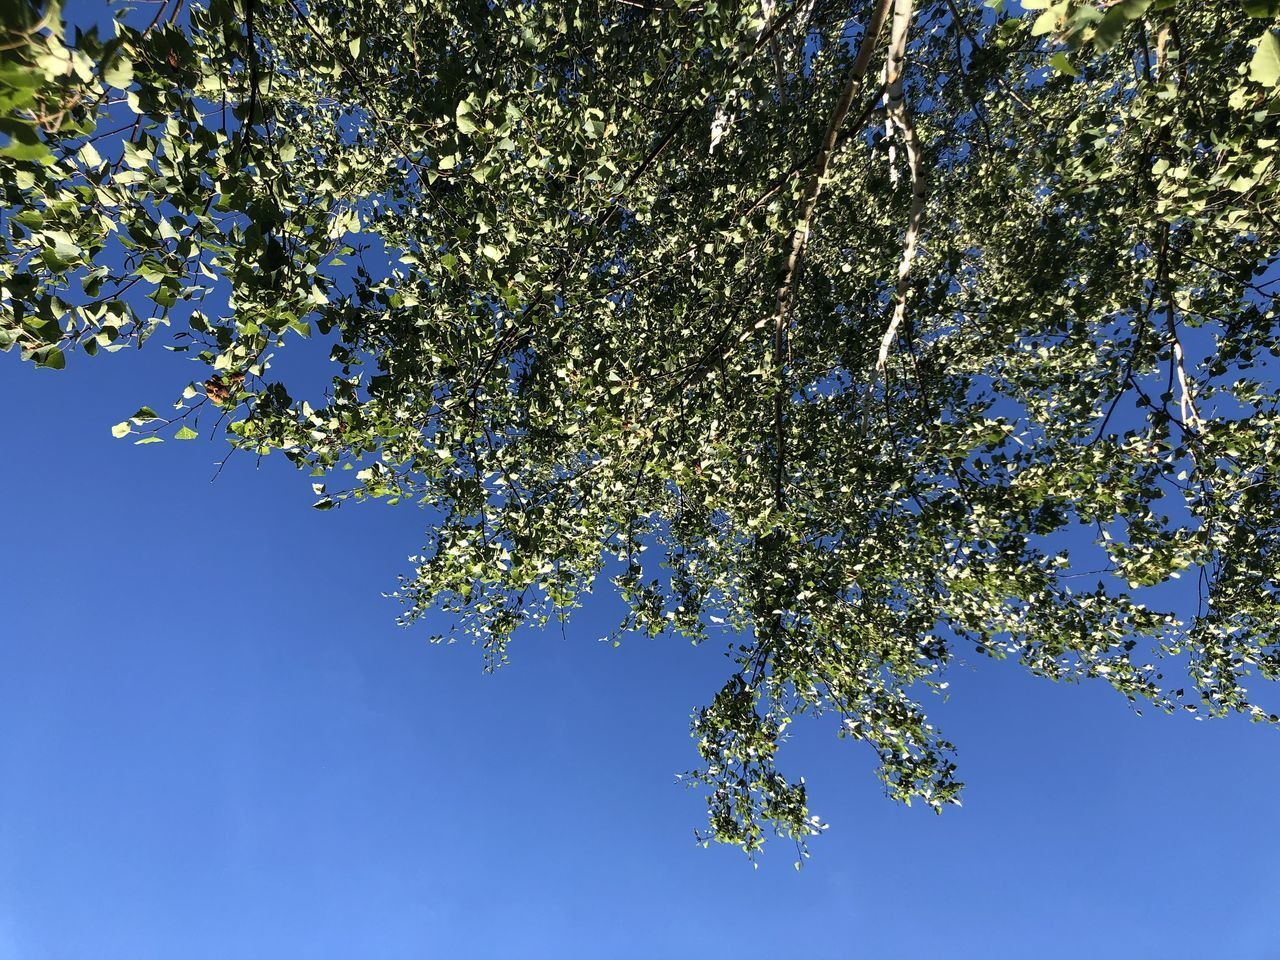 LOW ANGLE VIEW OF CHERRY TREE AGAINST CLEAR BLUE SKY